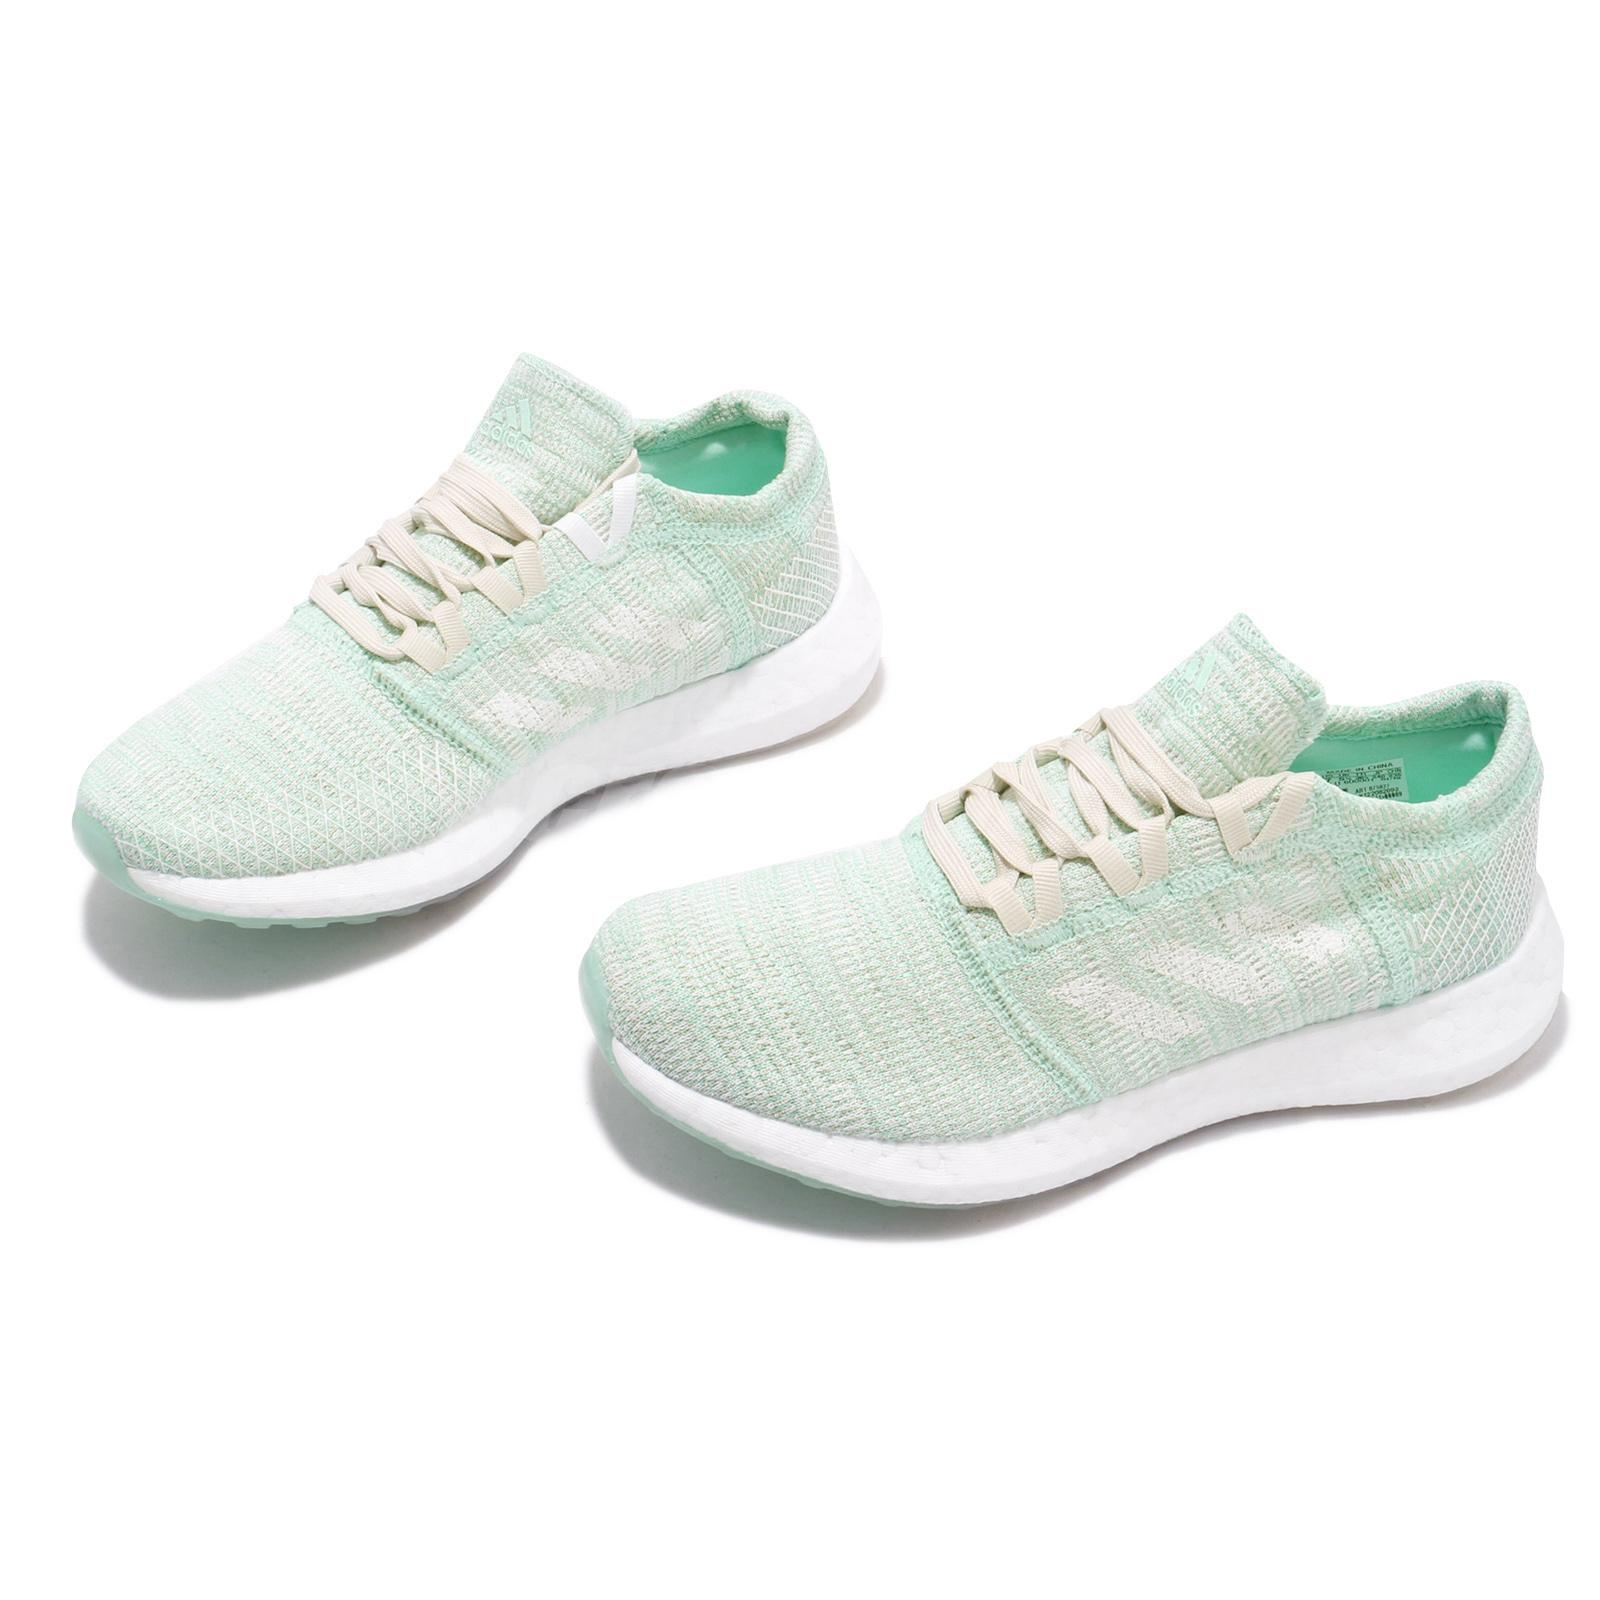 Détails sur adidas PureBOOST Go W Clear Mint White Women Running Shoes Sneakers B75827